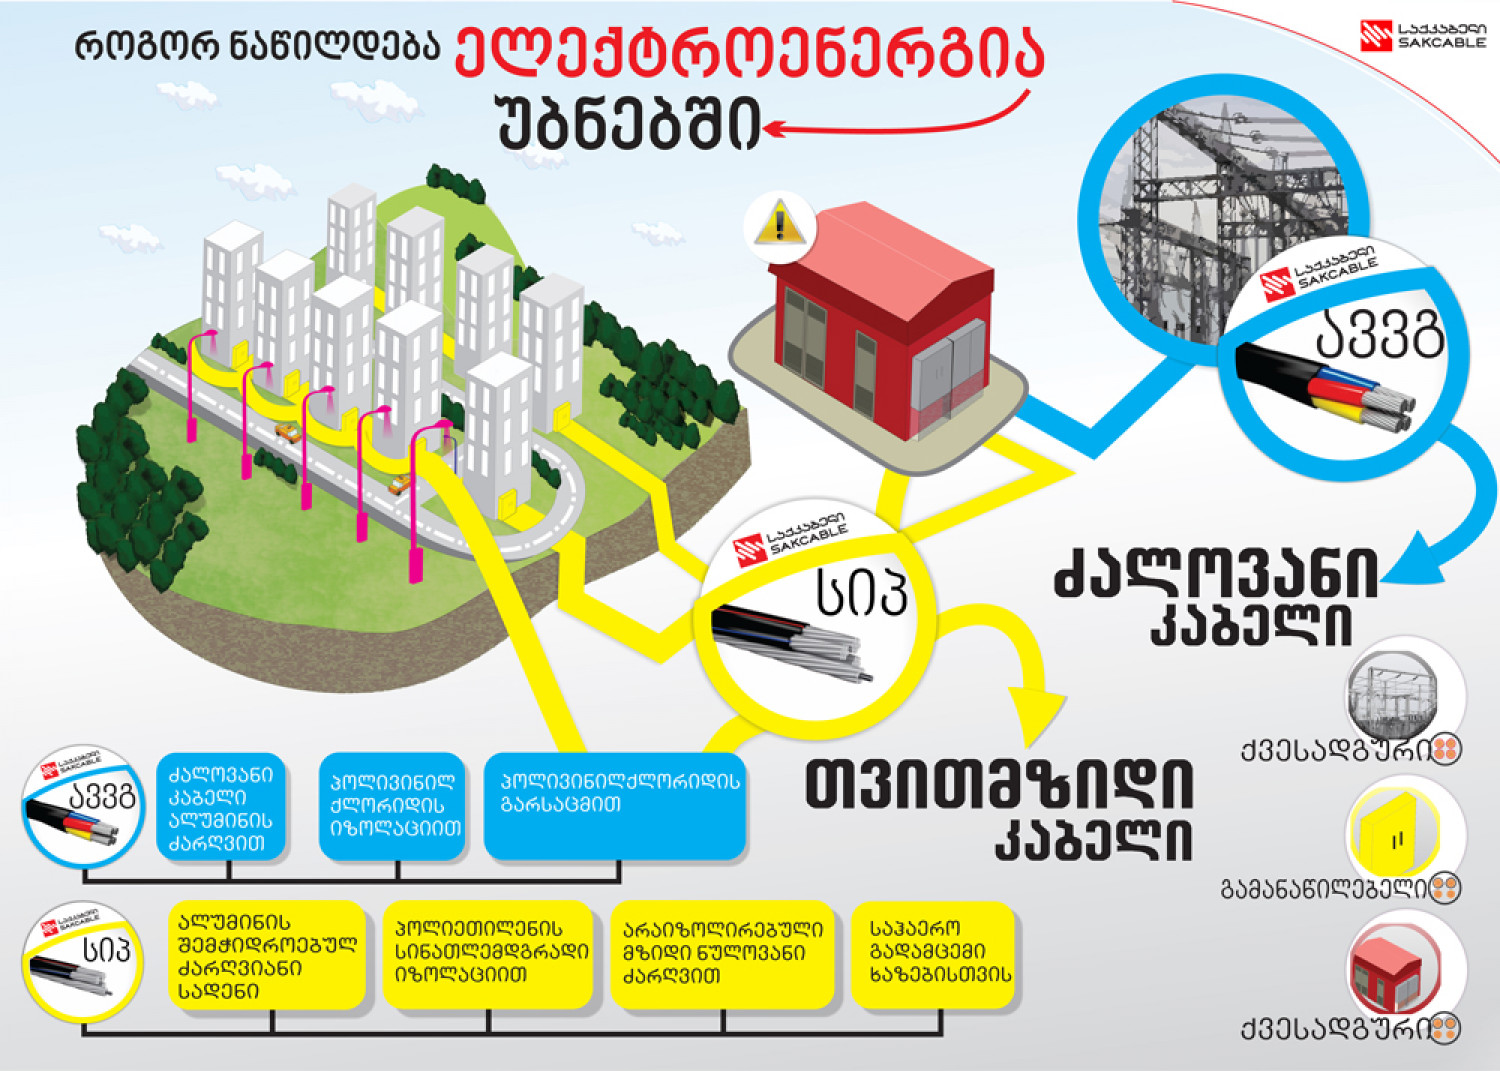 Electricity distribution in districts Infographic